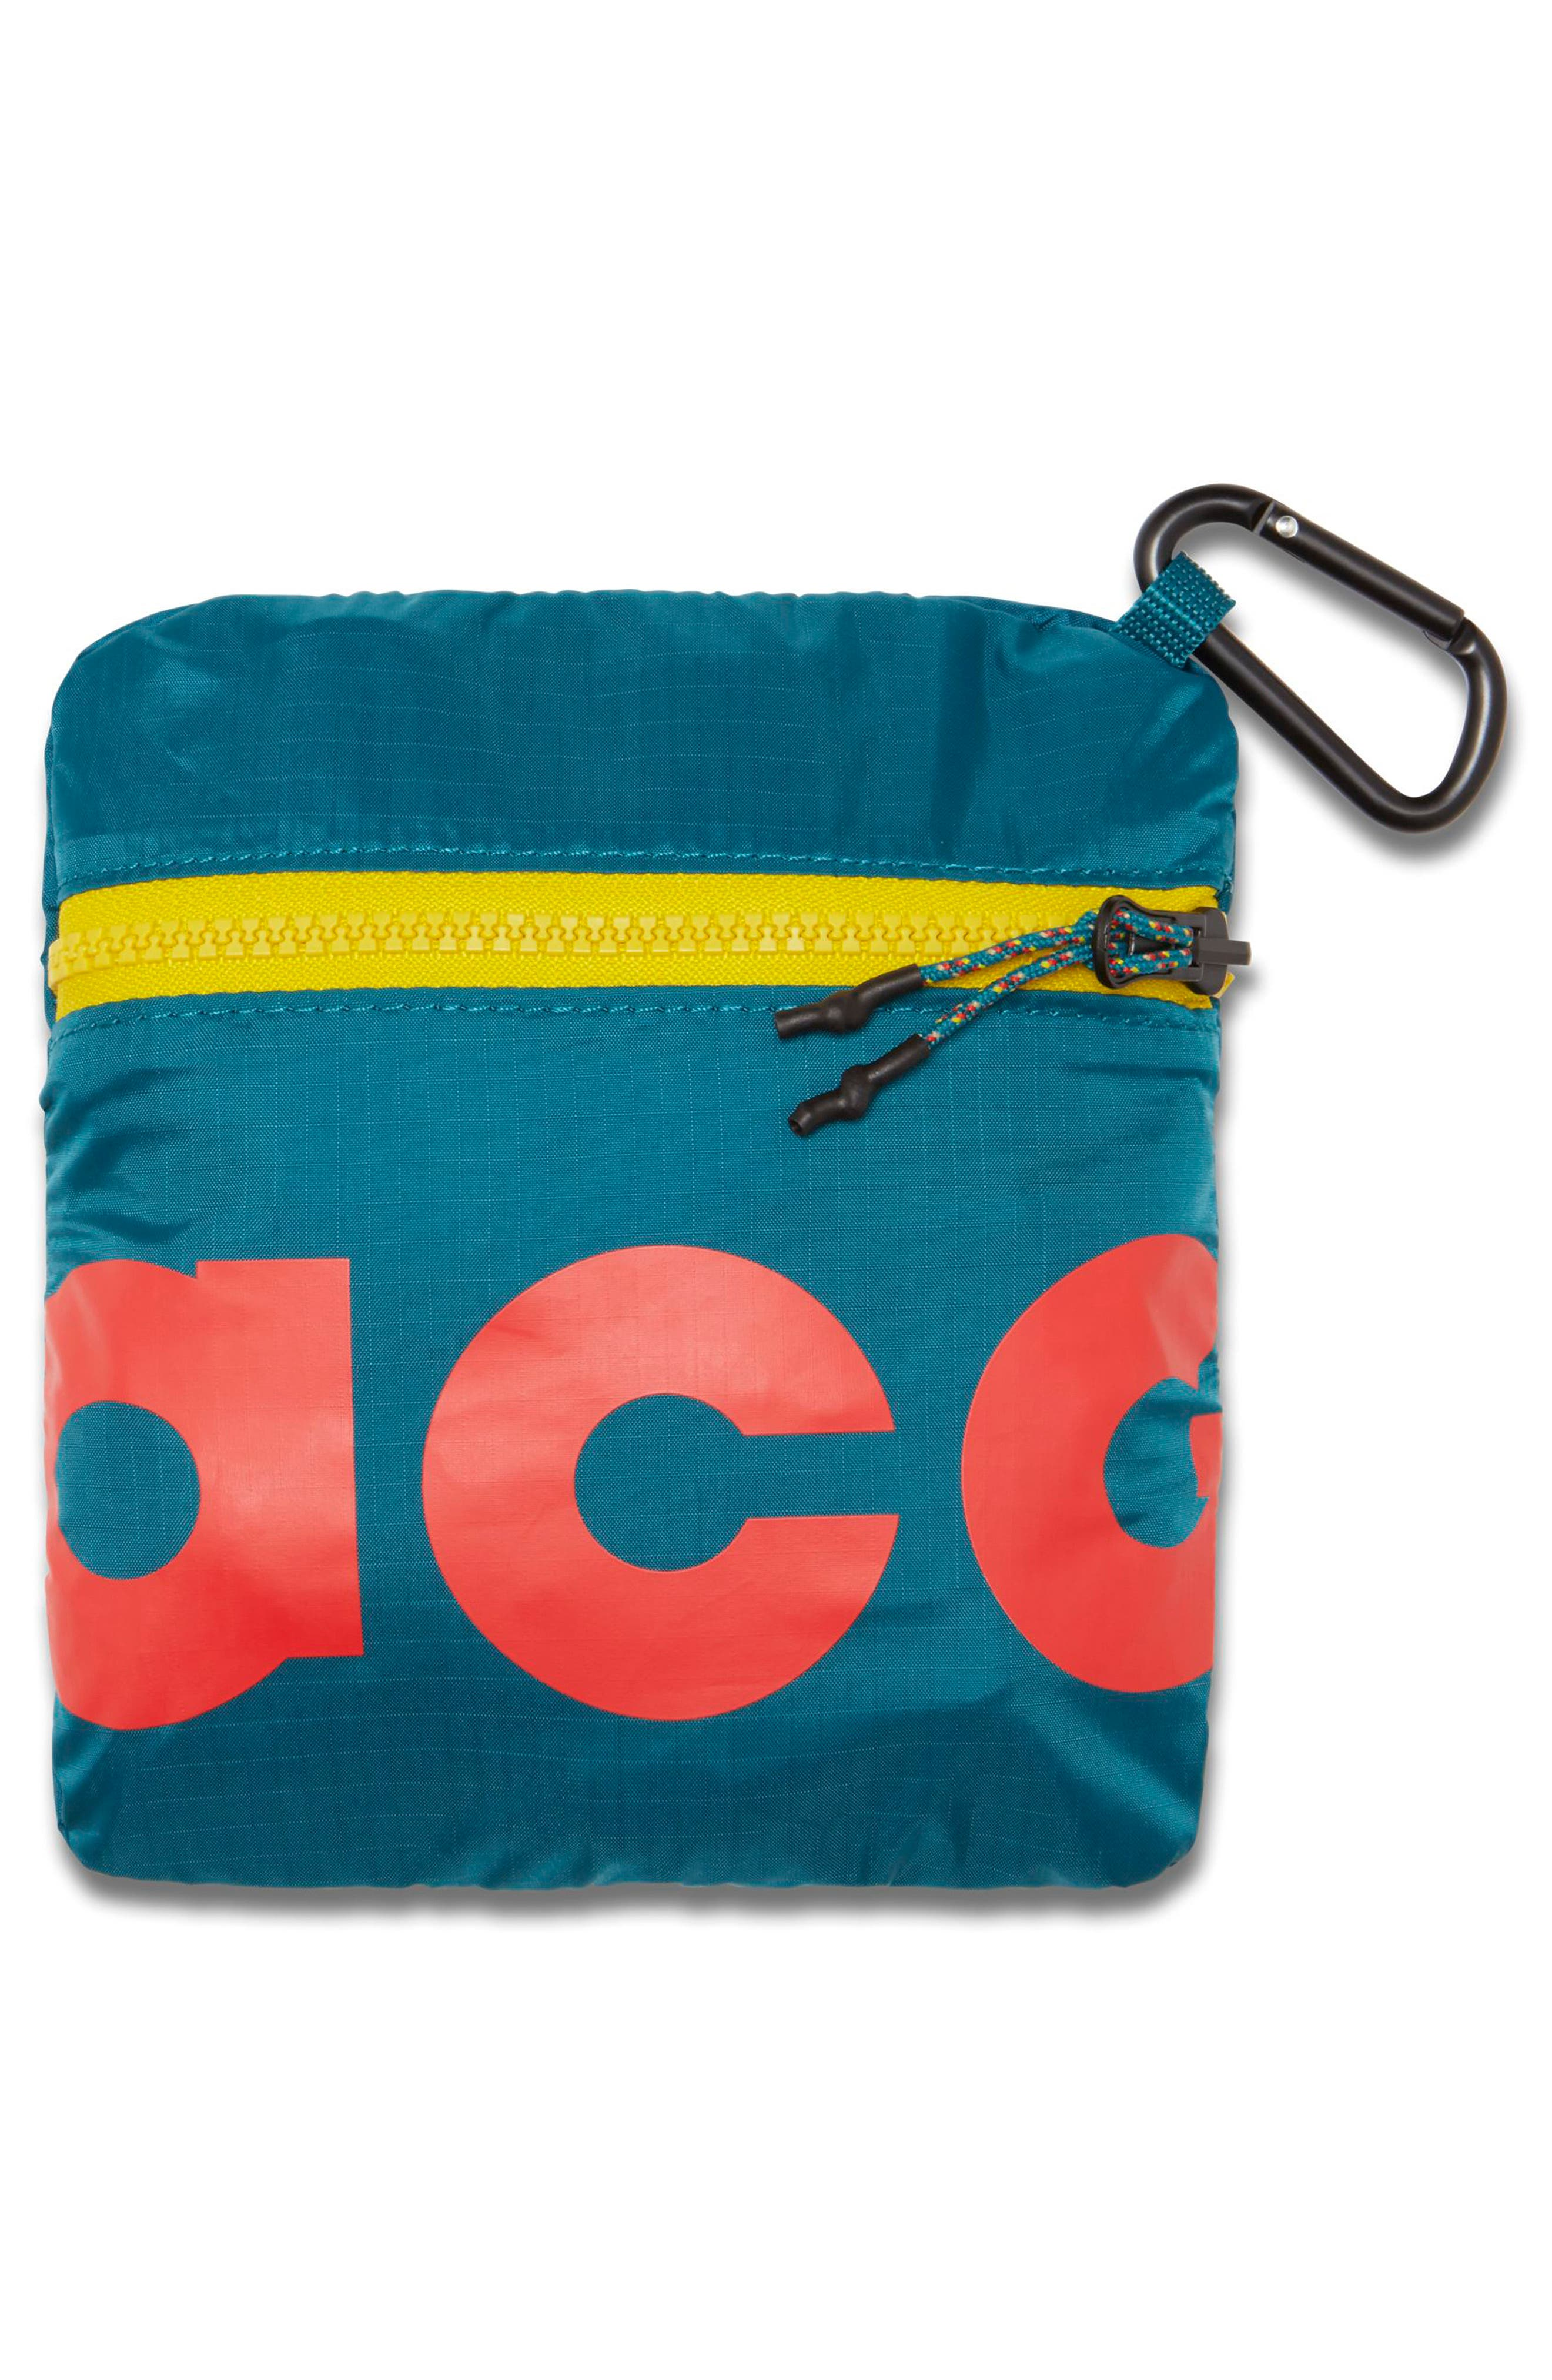 Packable Duffel Bag,                             Alternate thumbnail 5, color,                             GEODE TEAL/ HABANERO RED